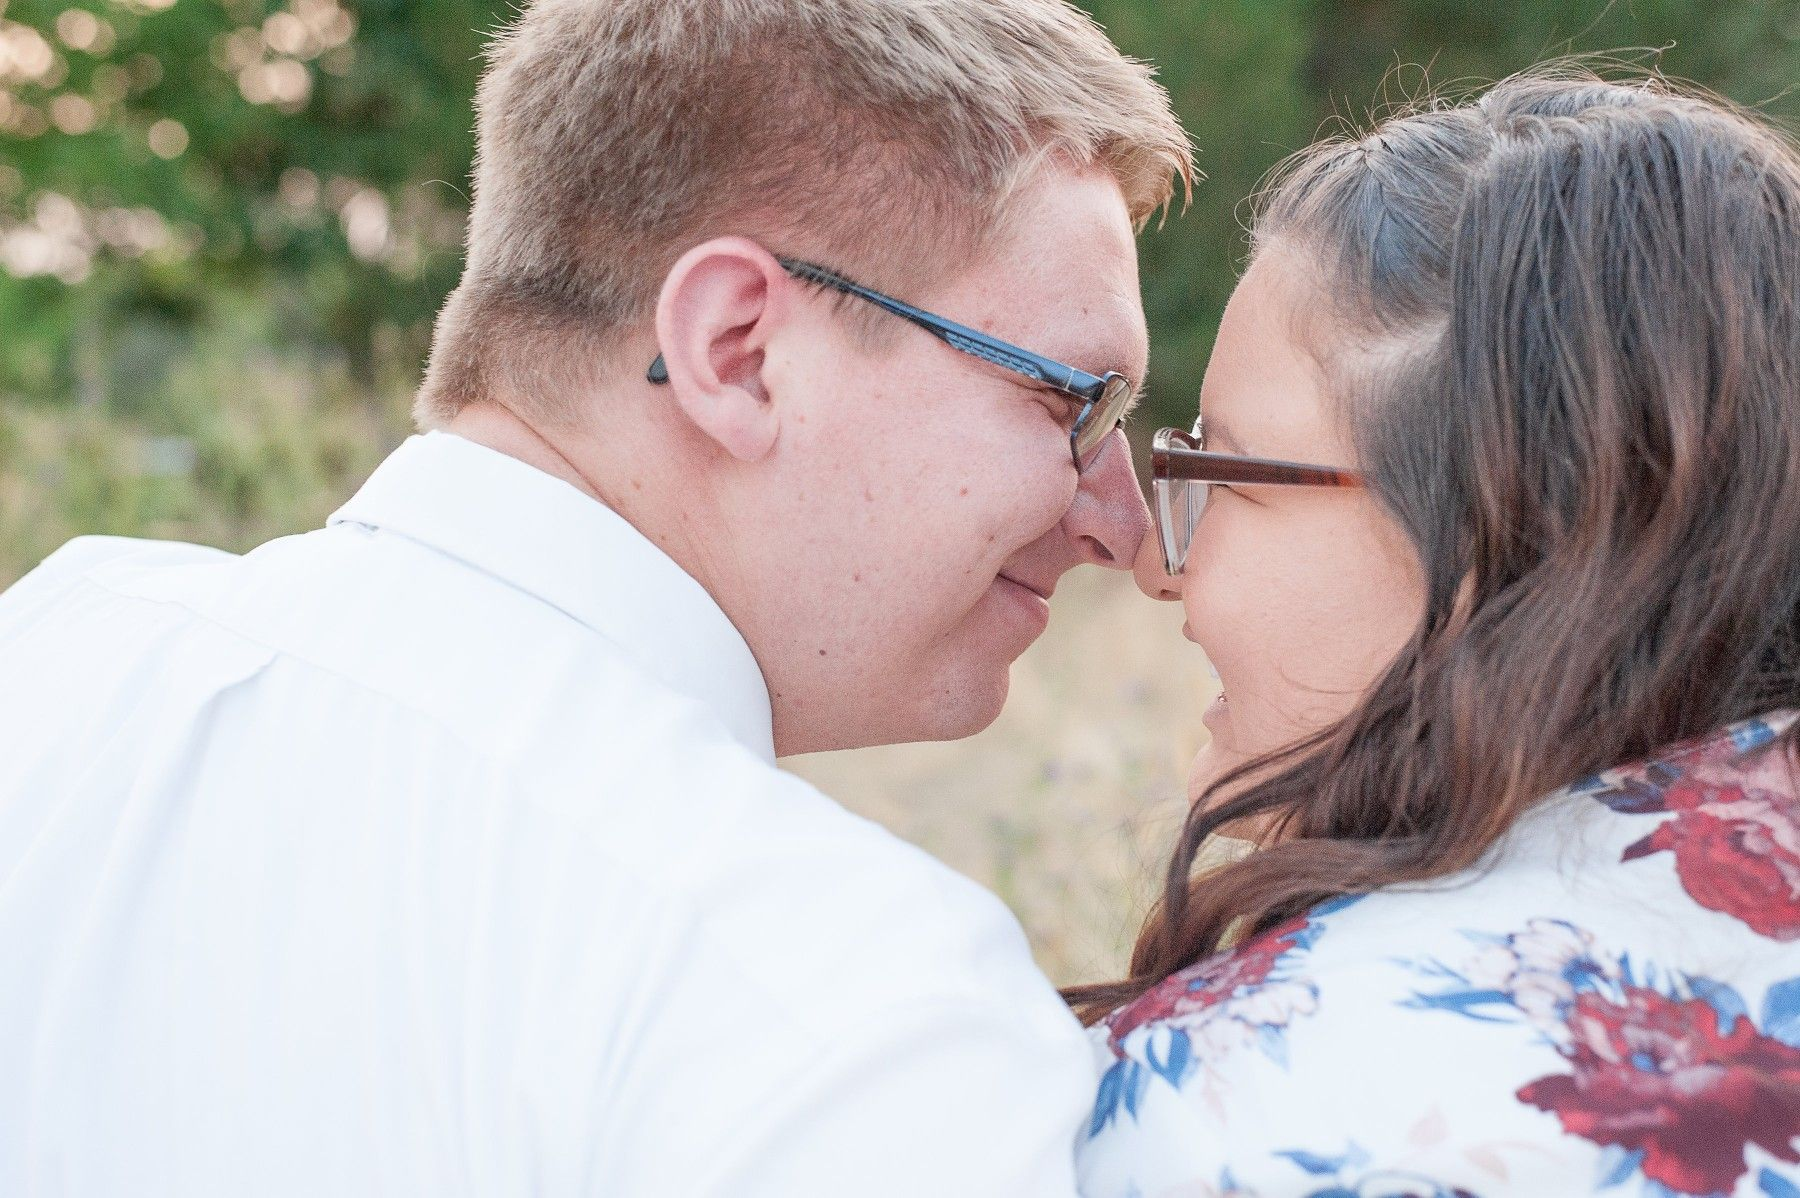 Nose kisses picture is a must have if thw couple is silly